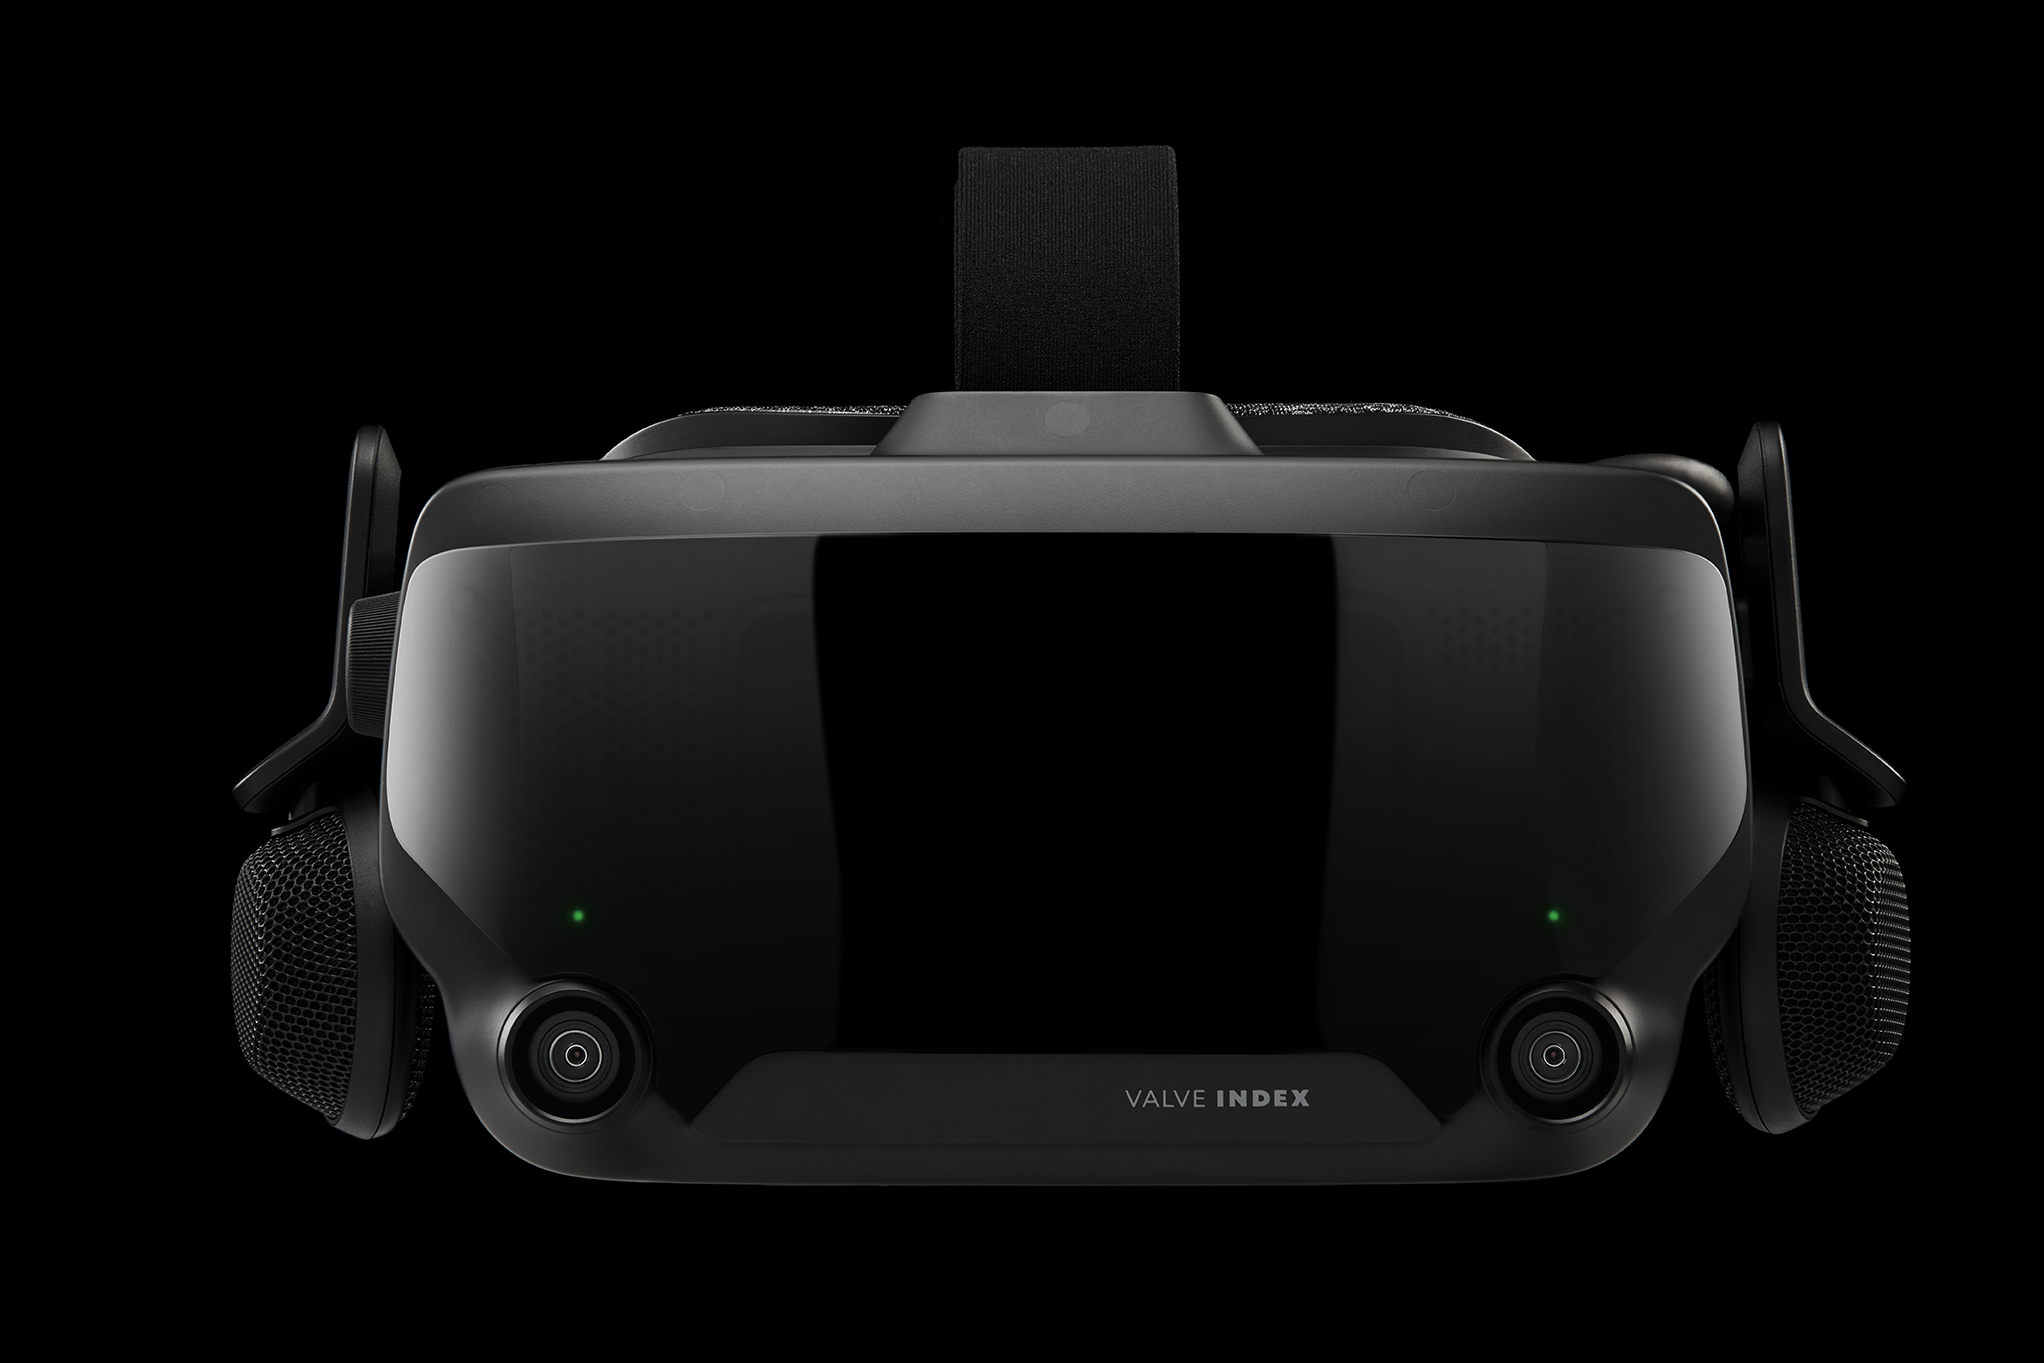 Valve Index HMD Front Cameras Lights On